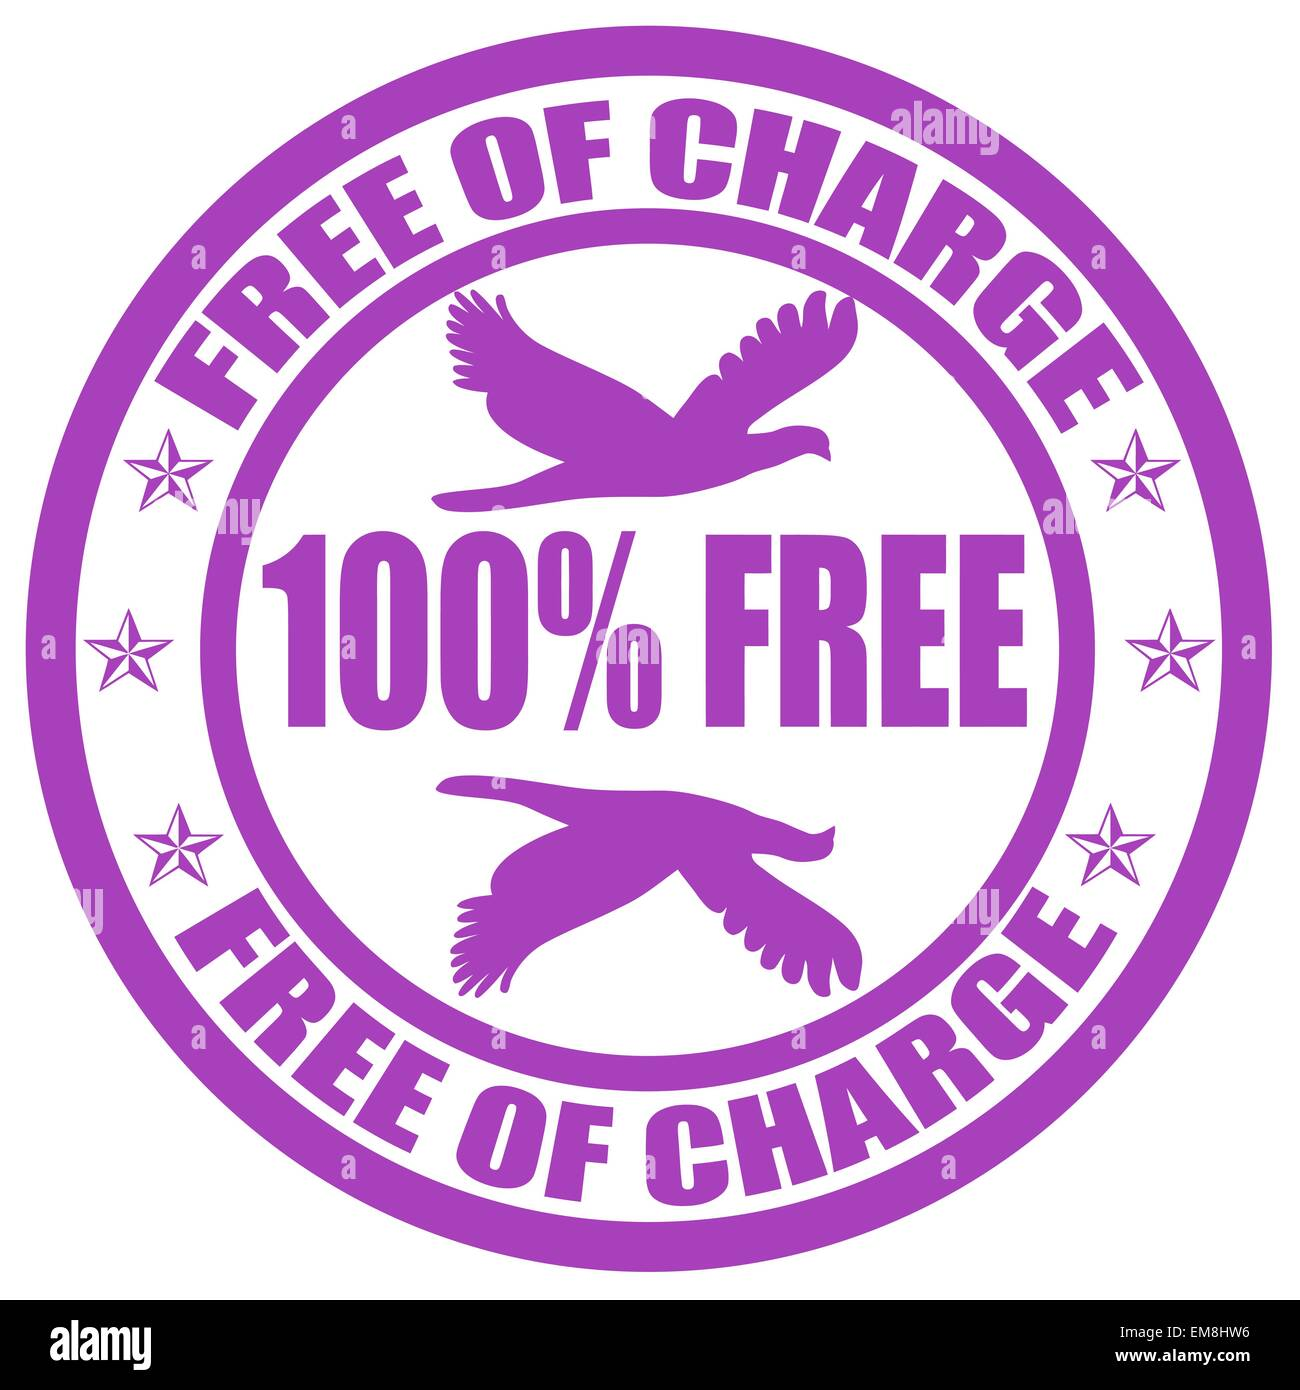 Free of charge - Stock Vector